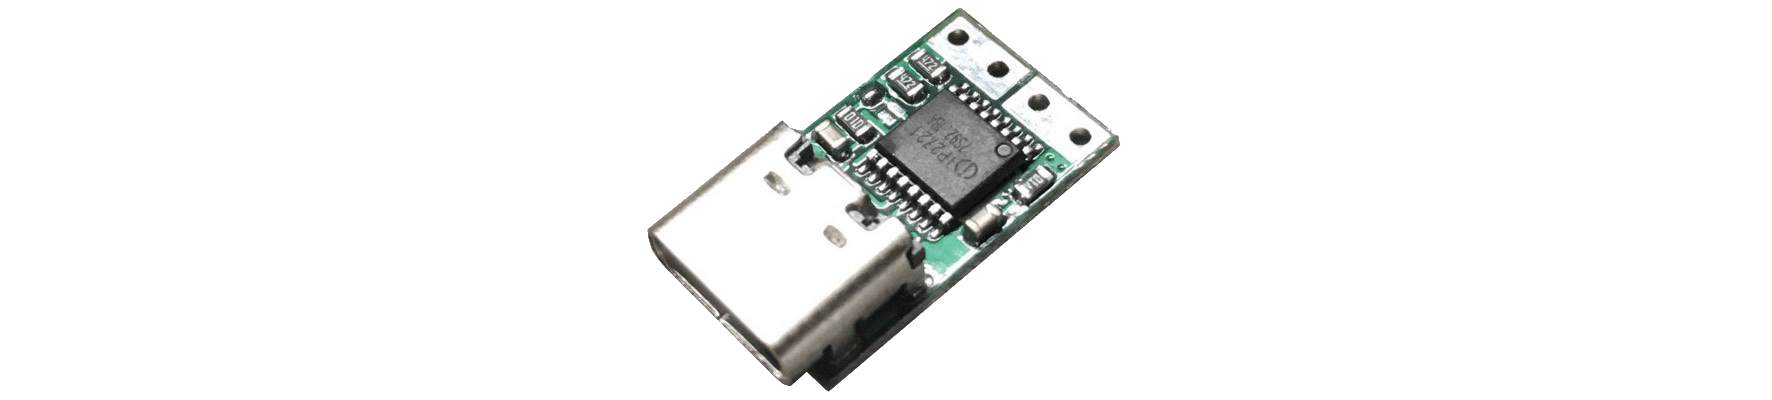 usb-c pd decoy board